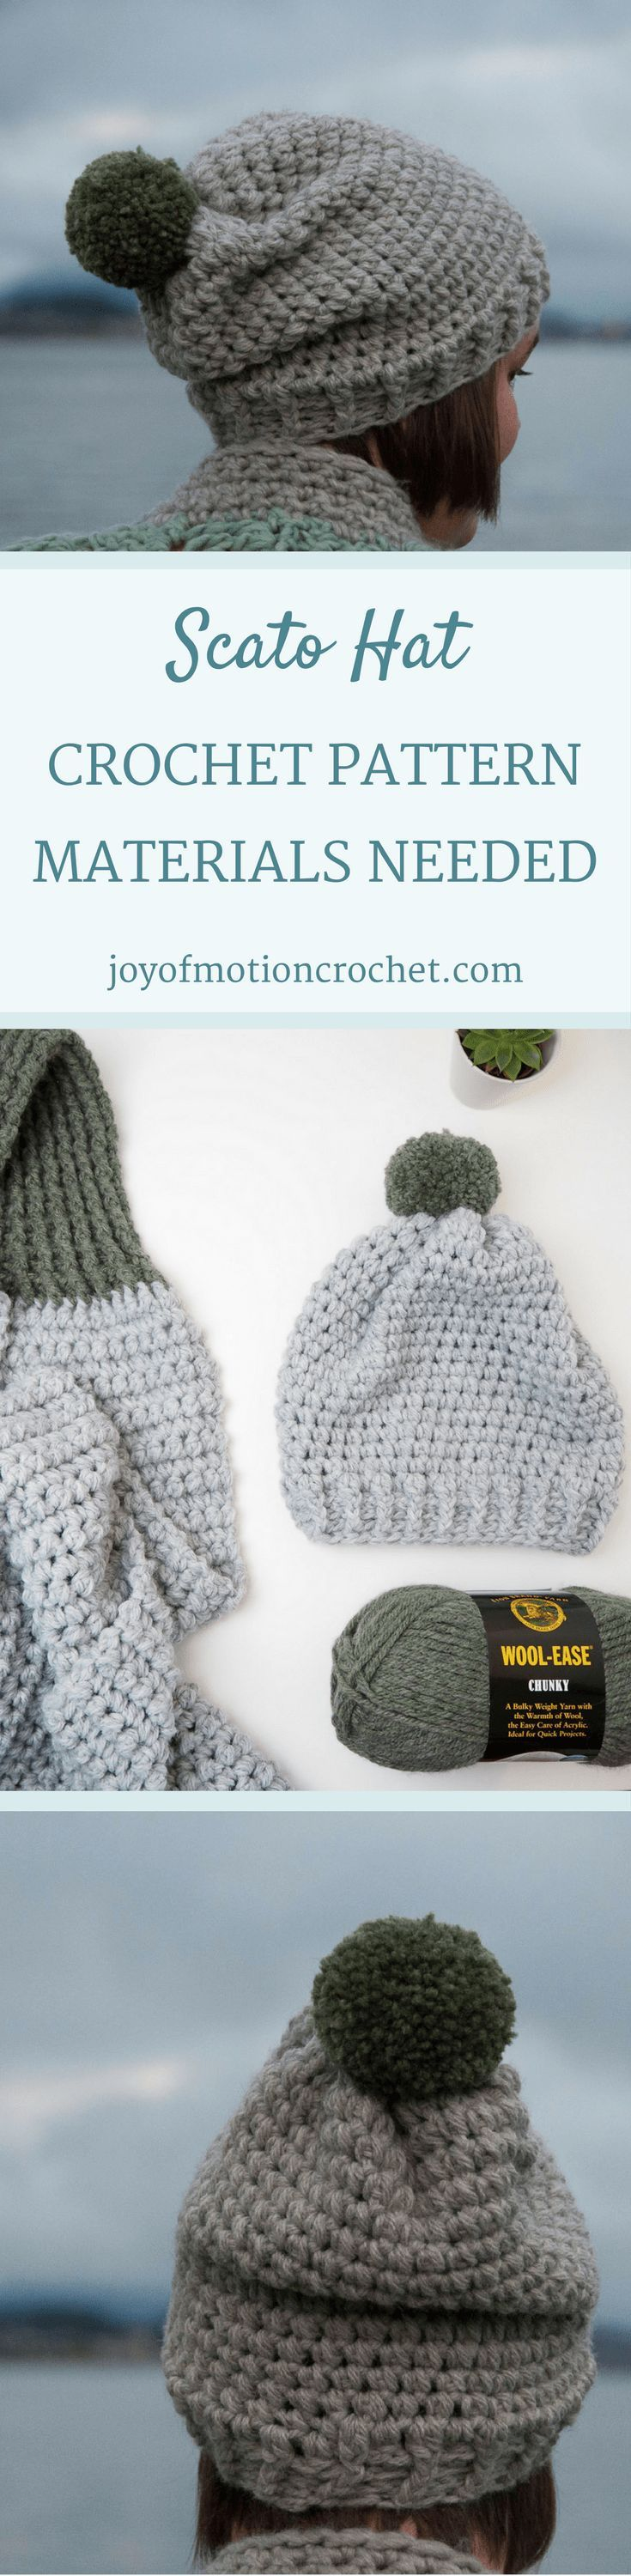 5395 best elk studio crochet finds images on pinterest ponchos find the scato hat materials needed right here crochet hat patternscrocheting bankloansurffo Image collections